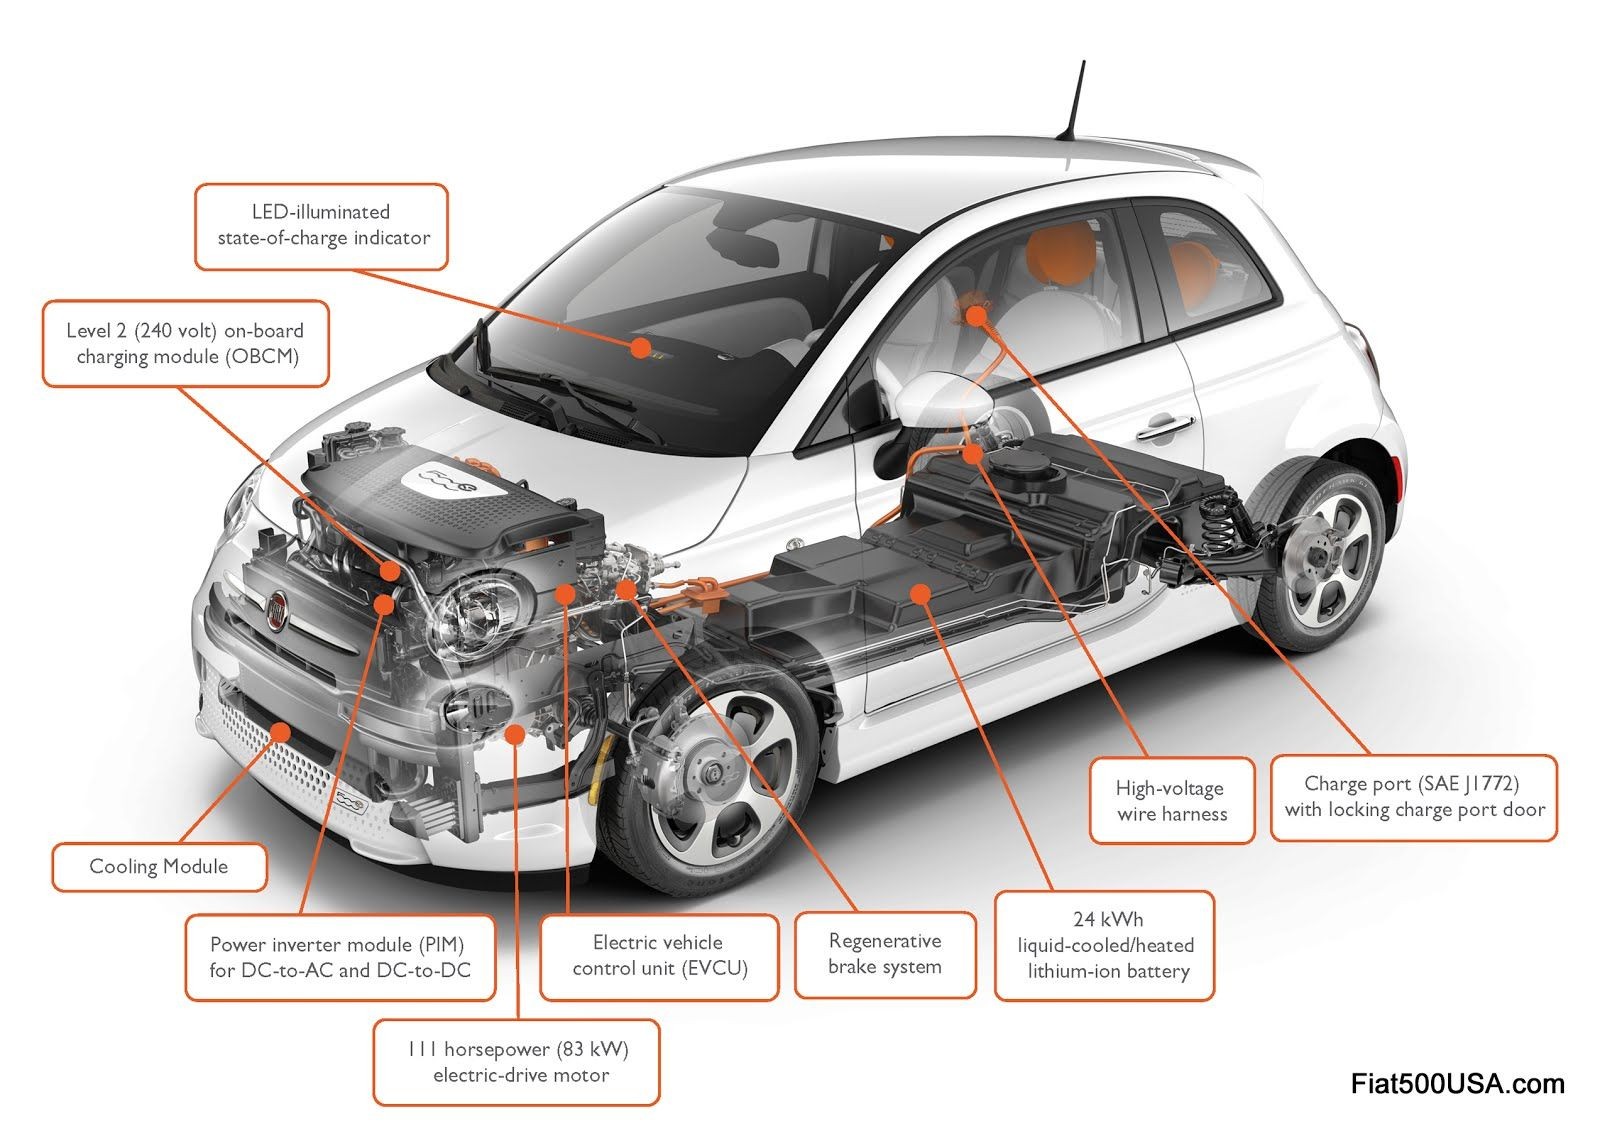 Pin By Ray Stafford On Cutaway Drawings Fiat Fiat 500e Cars